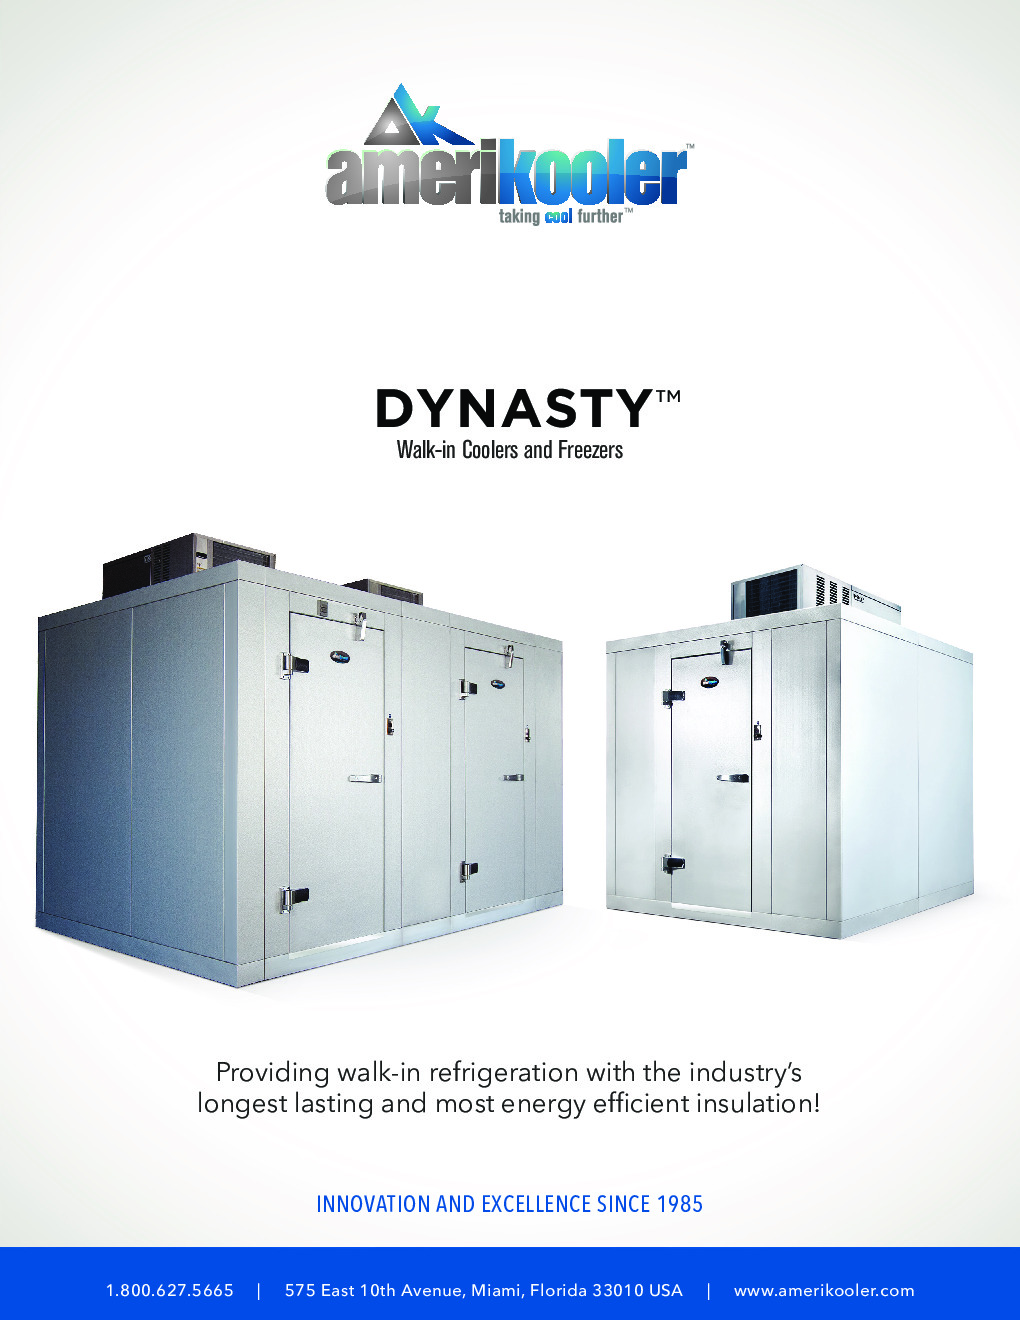 AmeriKooler DW091377F-6/7-SC 9' X 13' Walk-In Cooler, 7' L Cooler with Floor and 6' L Freezer, Self Contained